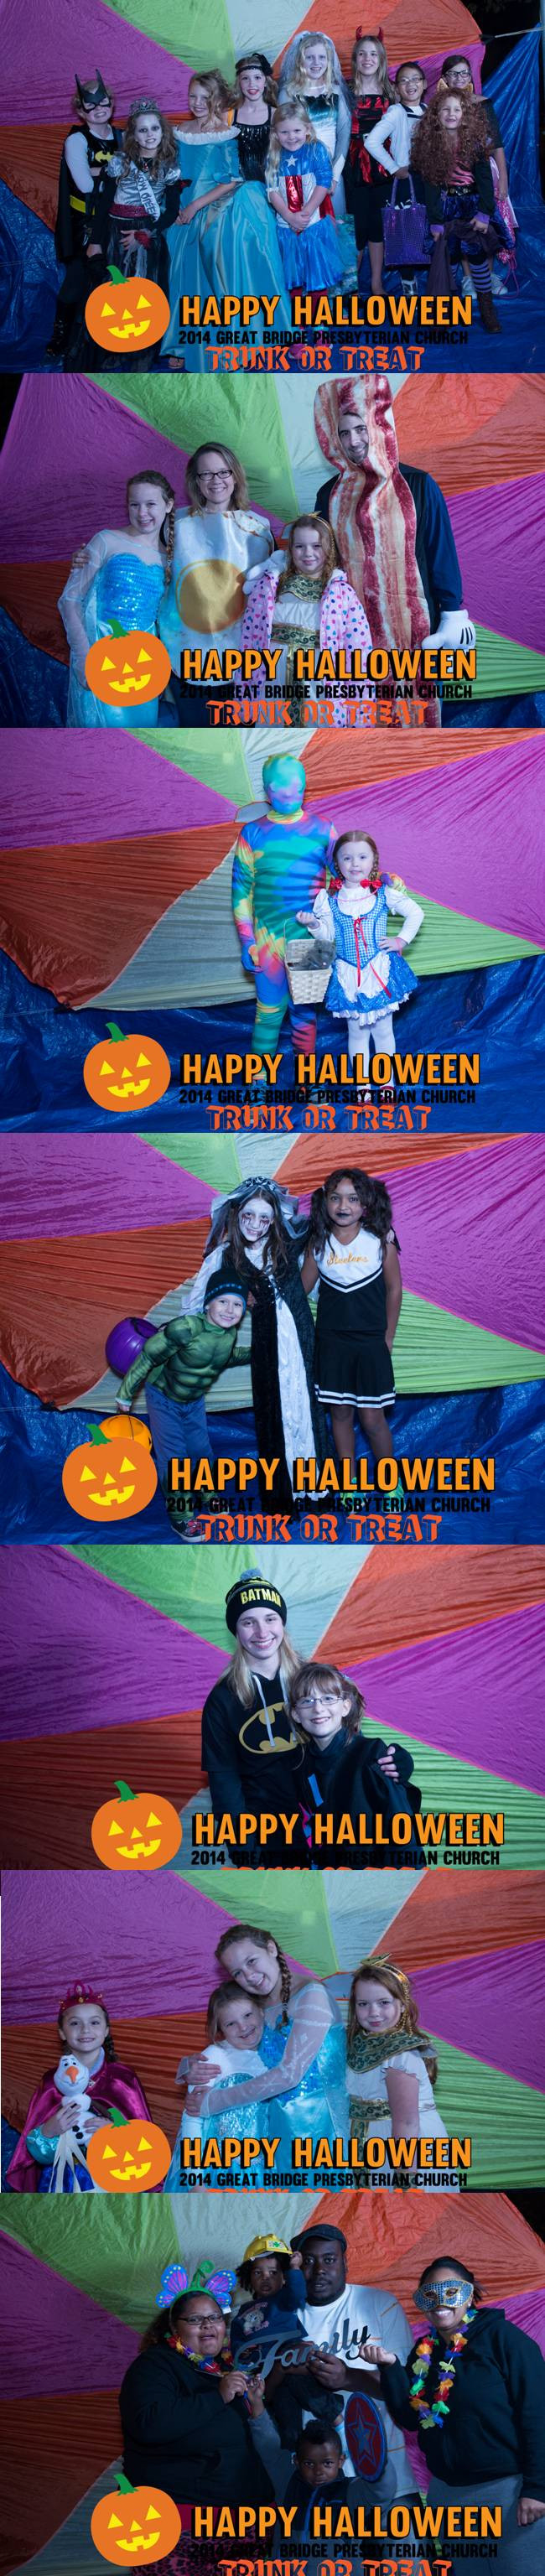 trunk or treat photoobooth.jpg